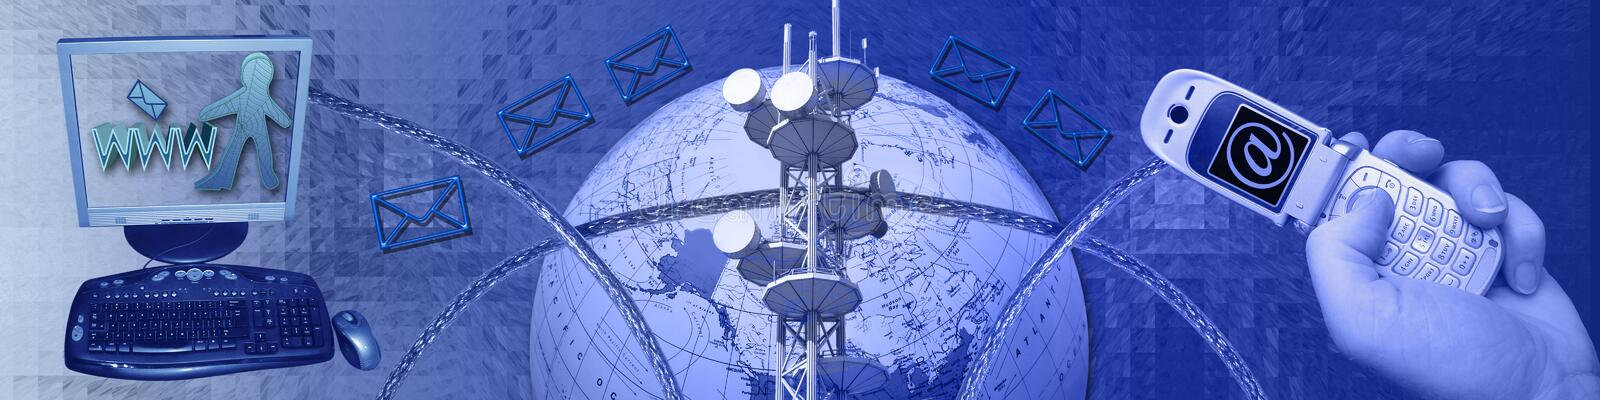 Networking and connectivity. The abstract background of this banner / header has a grid-like pattern. The big globe, cellphone, cables, communication tower and stock illustration